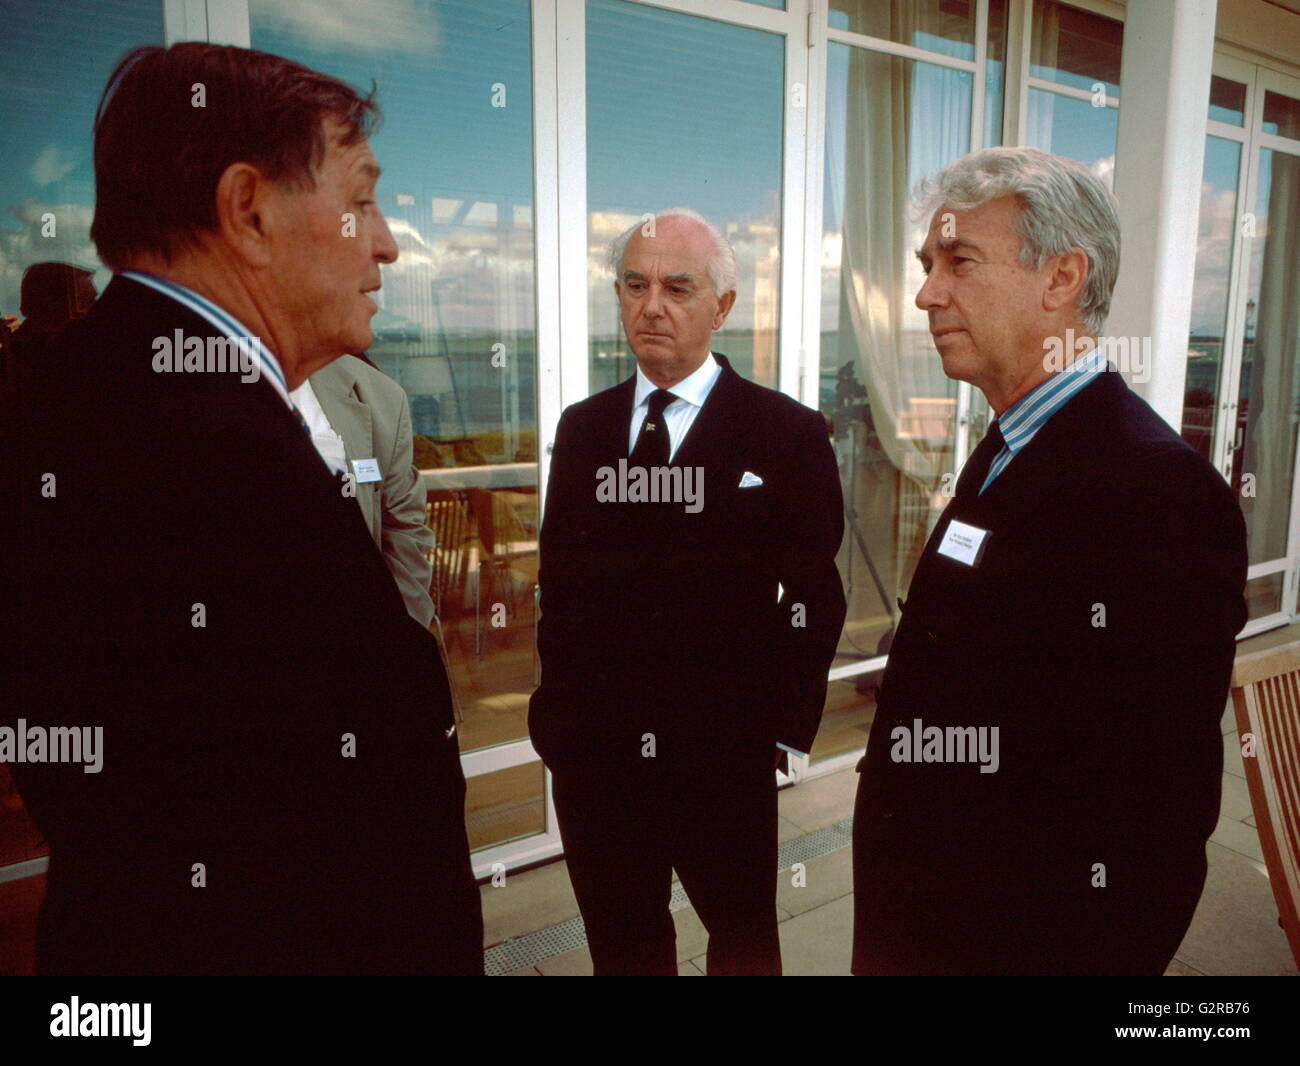 AJAXNETPHOT0. 2000. COWES,ENGLAND. - PEOPLE IN YACHTING, (L-R) BOB FISHER, PETER NICHOLSON AND RON HOLLAND IN DISCUSSION - Stock Image